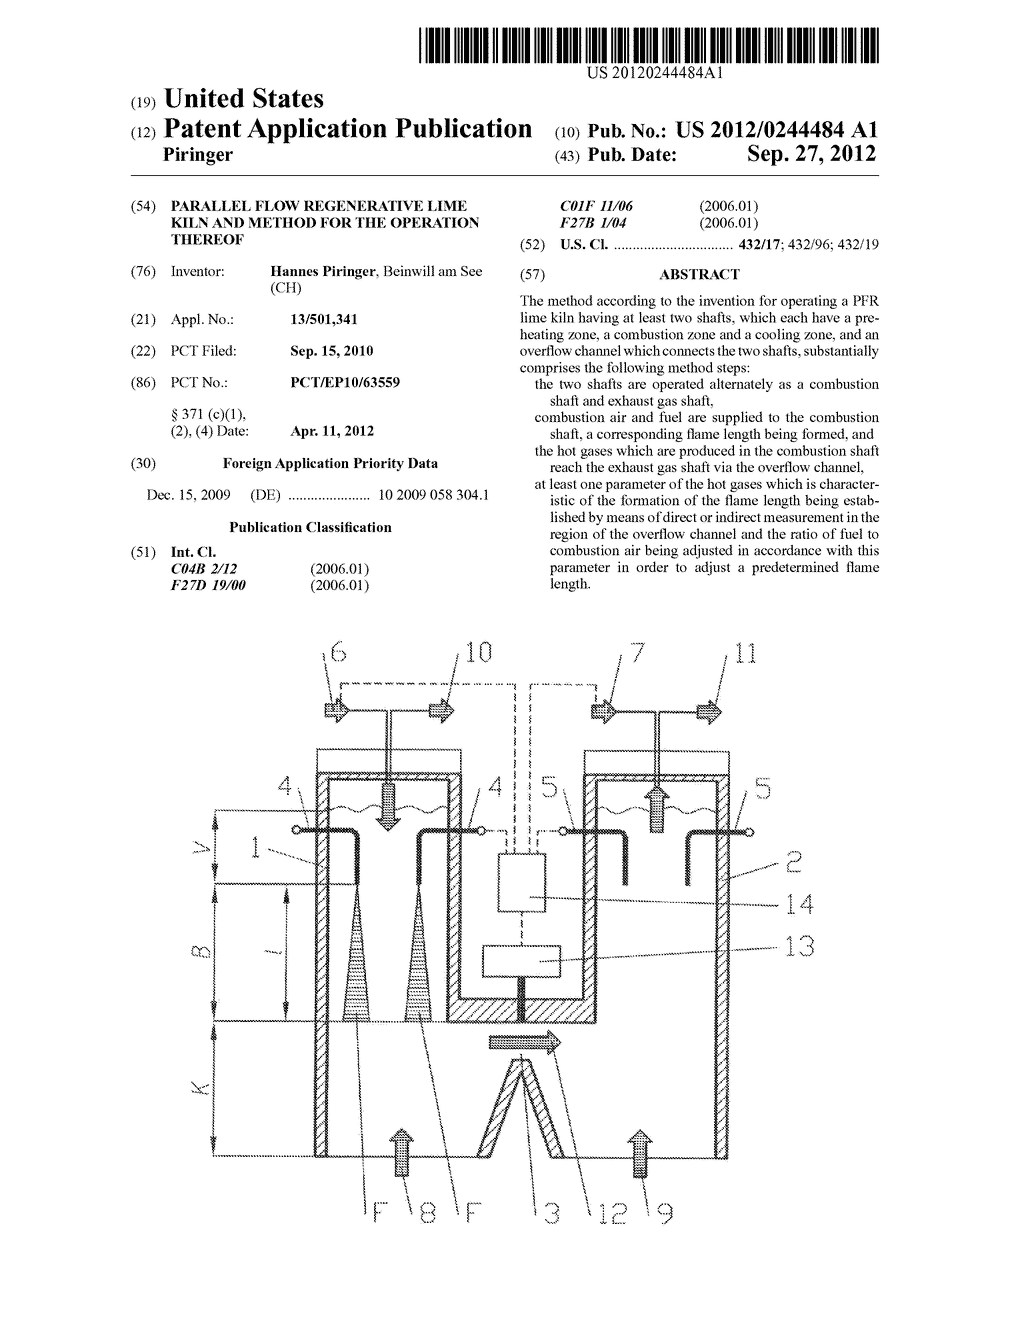 PARALLEL FLOW REGENERATIVE LIME KILN AND METHOD FOR THE OPERATION THEREOF - diagram, schematic, and image 01